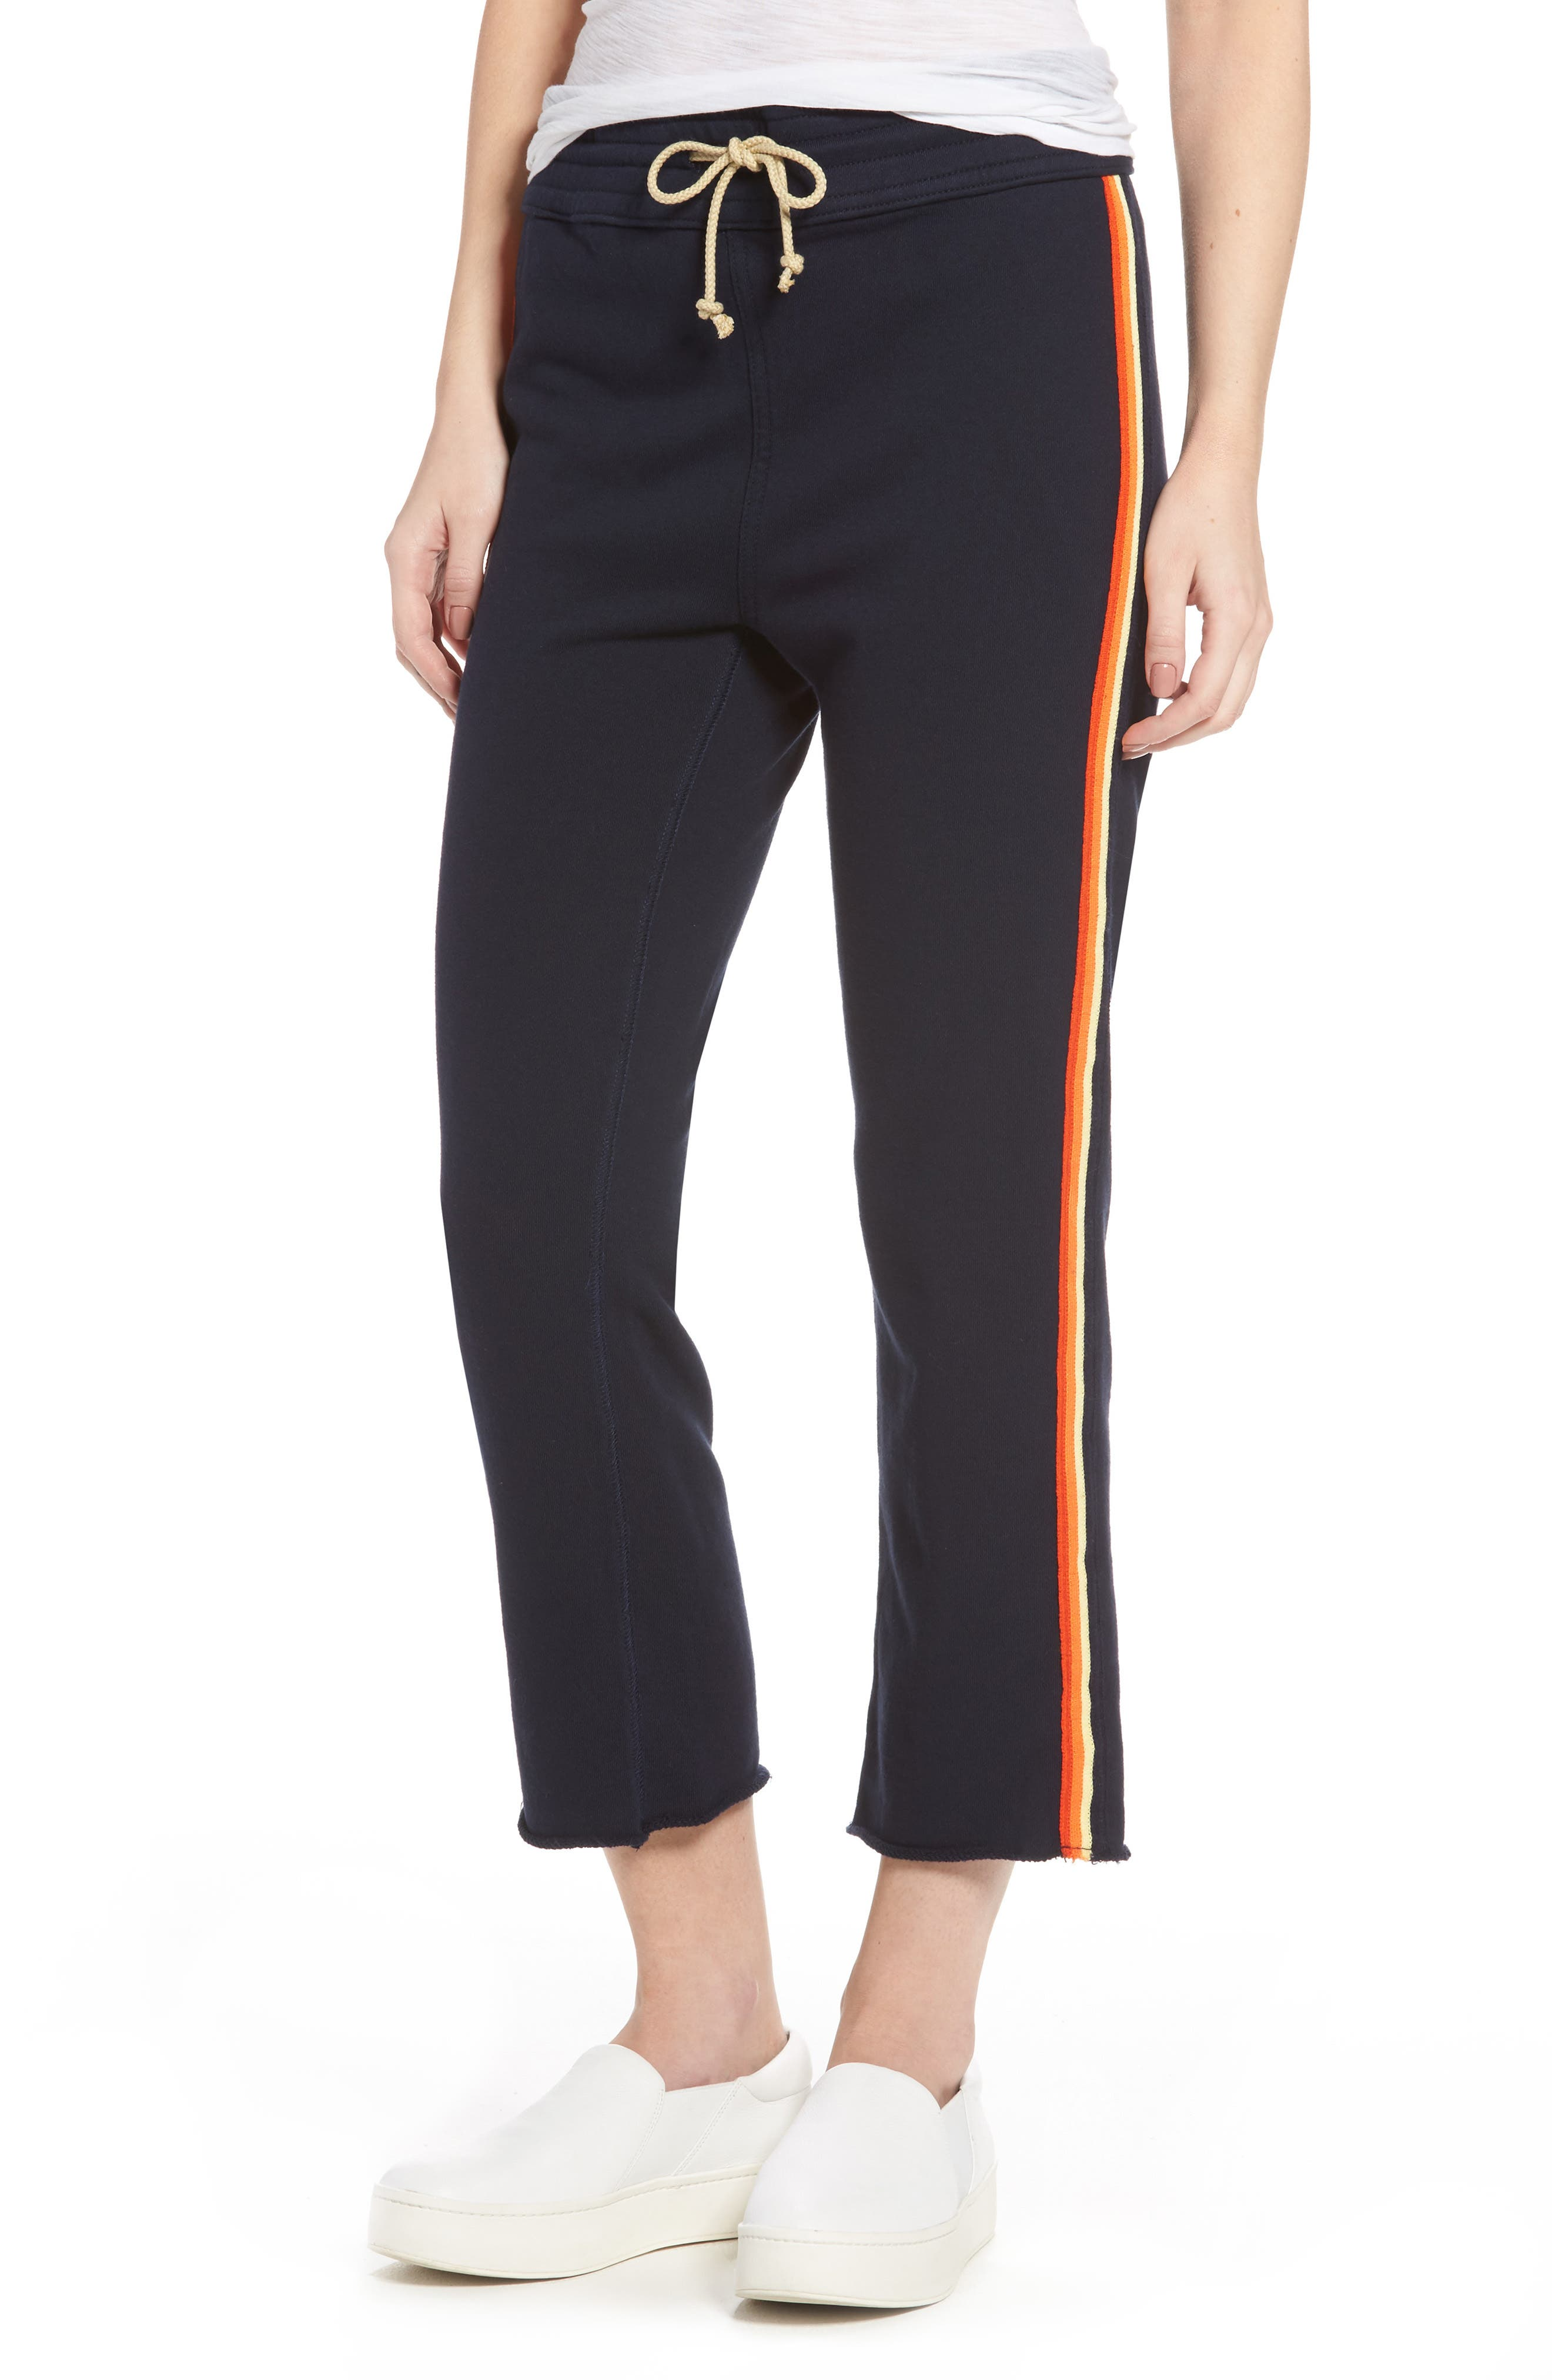 MOTHER High Rise Crop Gym Pants